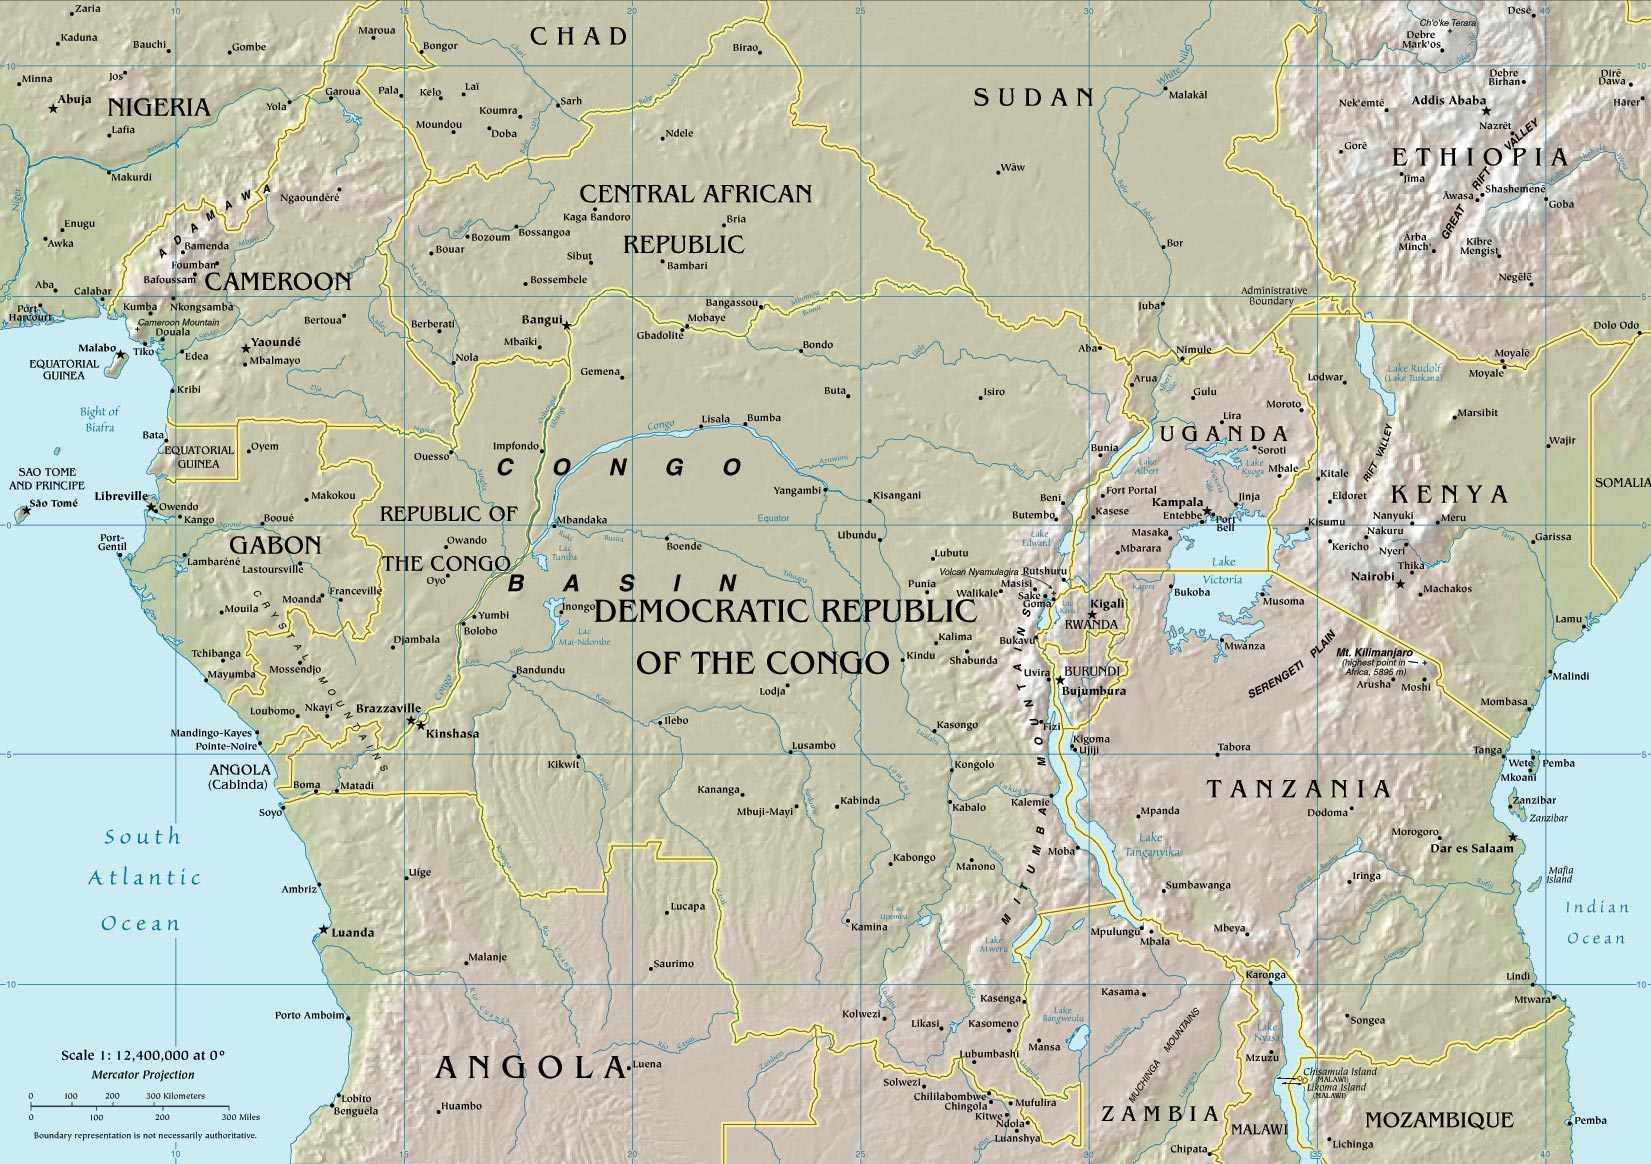 Lake Victoria On Map Of Africa.Central Africa Physical Map Lake Victoria Kenya